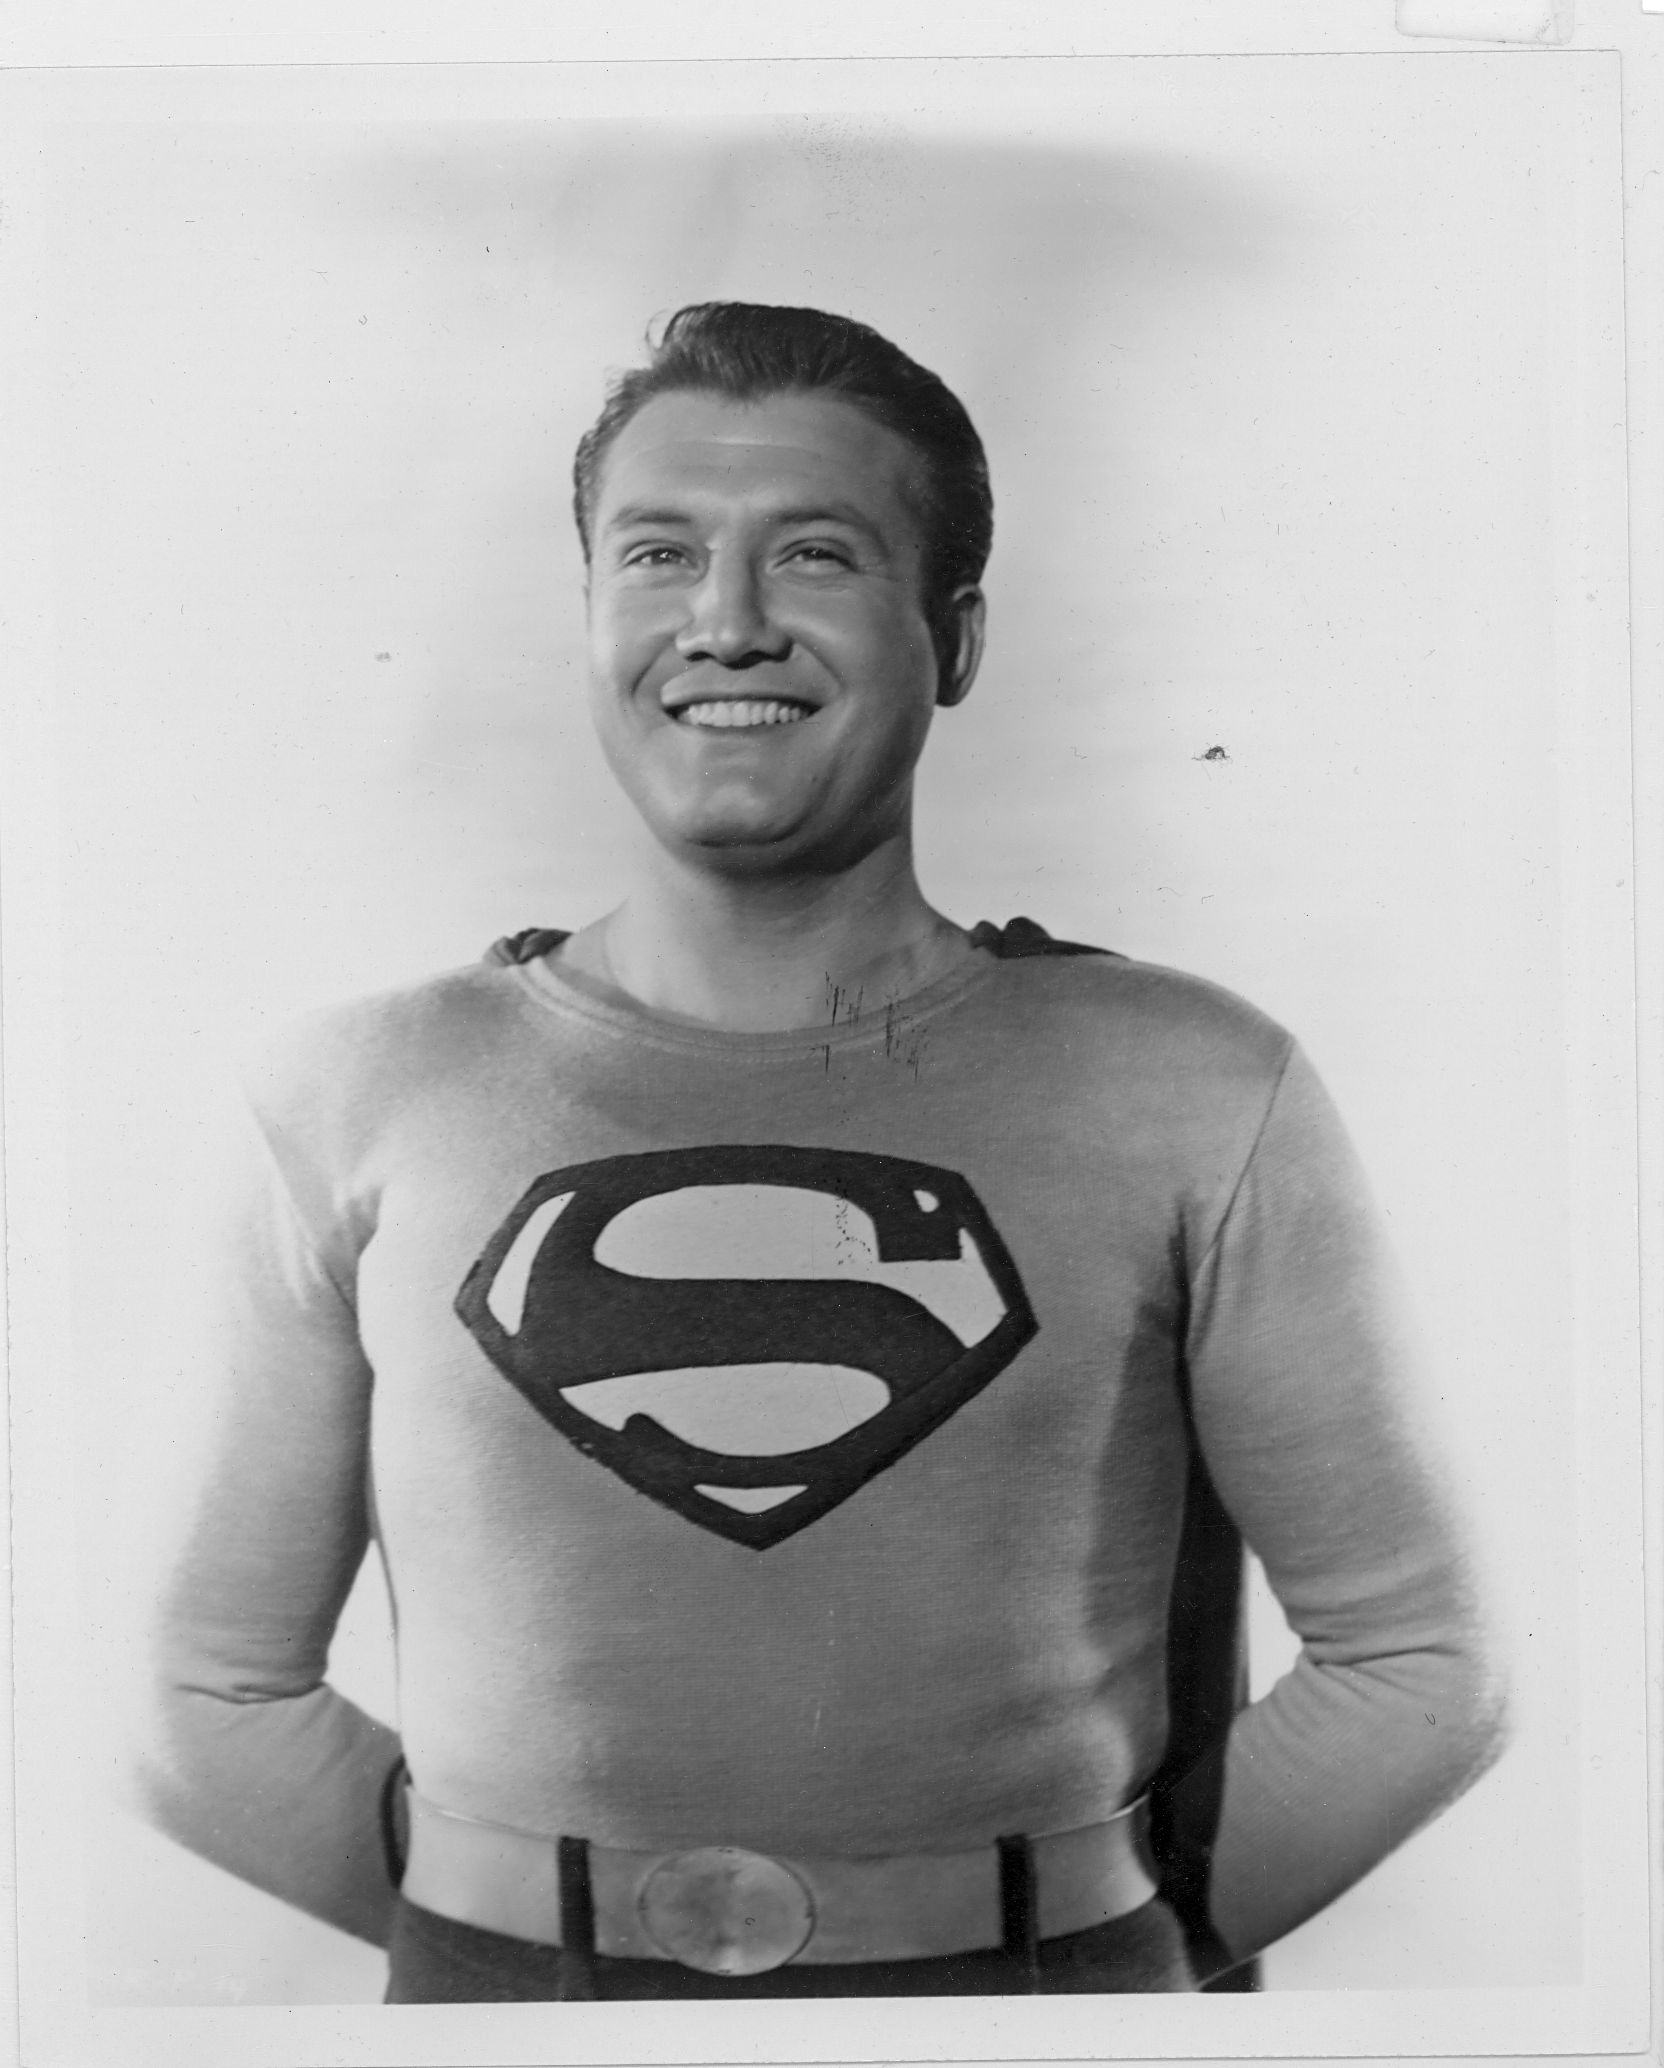 george reeves supermangeorge reeves superman, george reeves, george reeves biography, george reeves gone with the wind youtube, george reeves imdb, george reeves house, george reeves movie, george reeves cause of death, george reeves from here to eternity, george reeves ghost, george reeves net worth, george reeves superman youtube, george reeves gay, george reeves death mask, george reeves superman costume, george reeves death photos